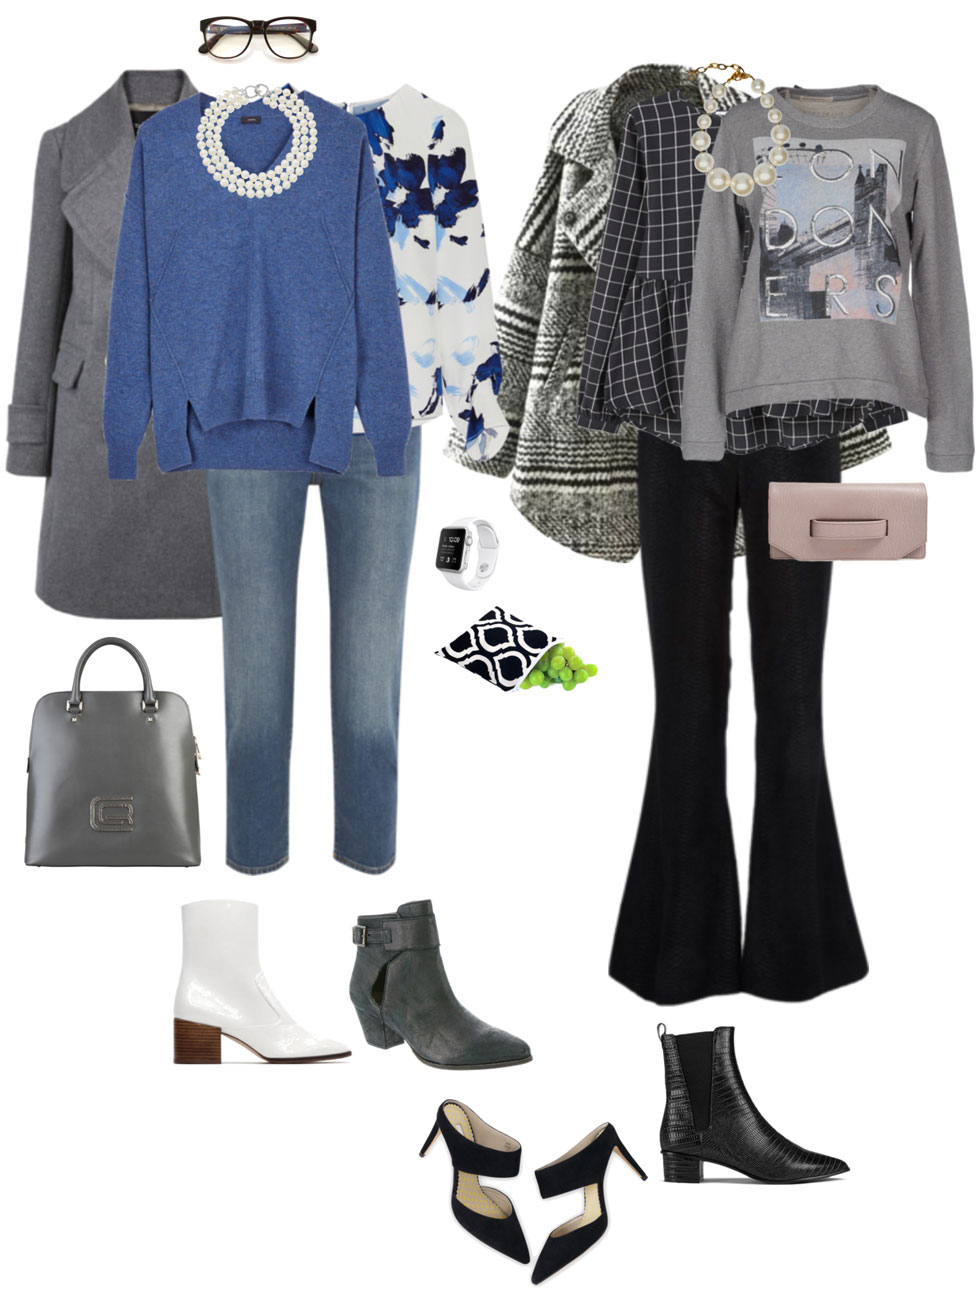 Ensemble: A Casual Pile of Pearls